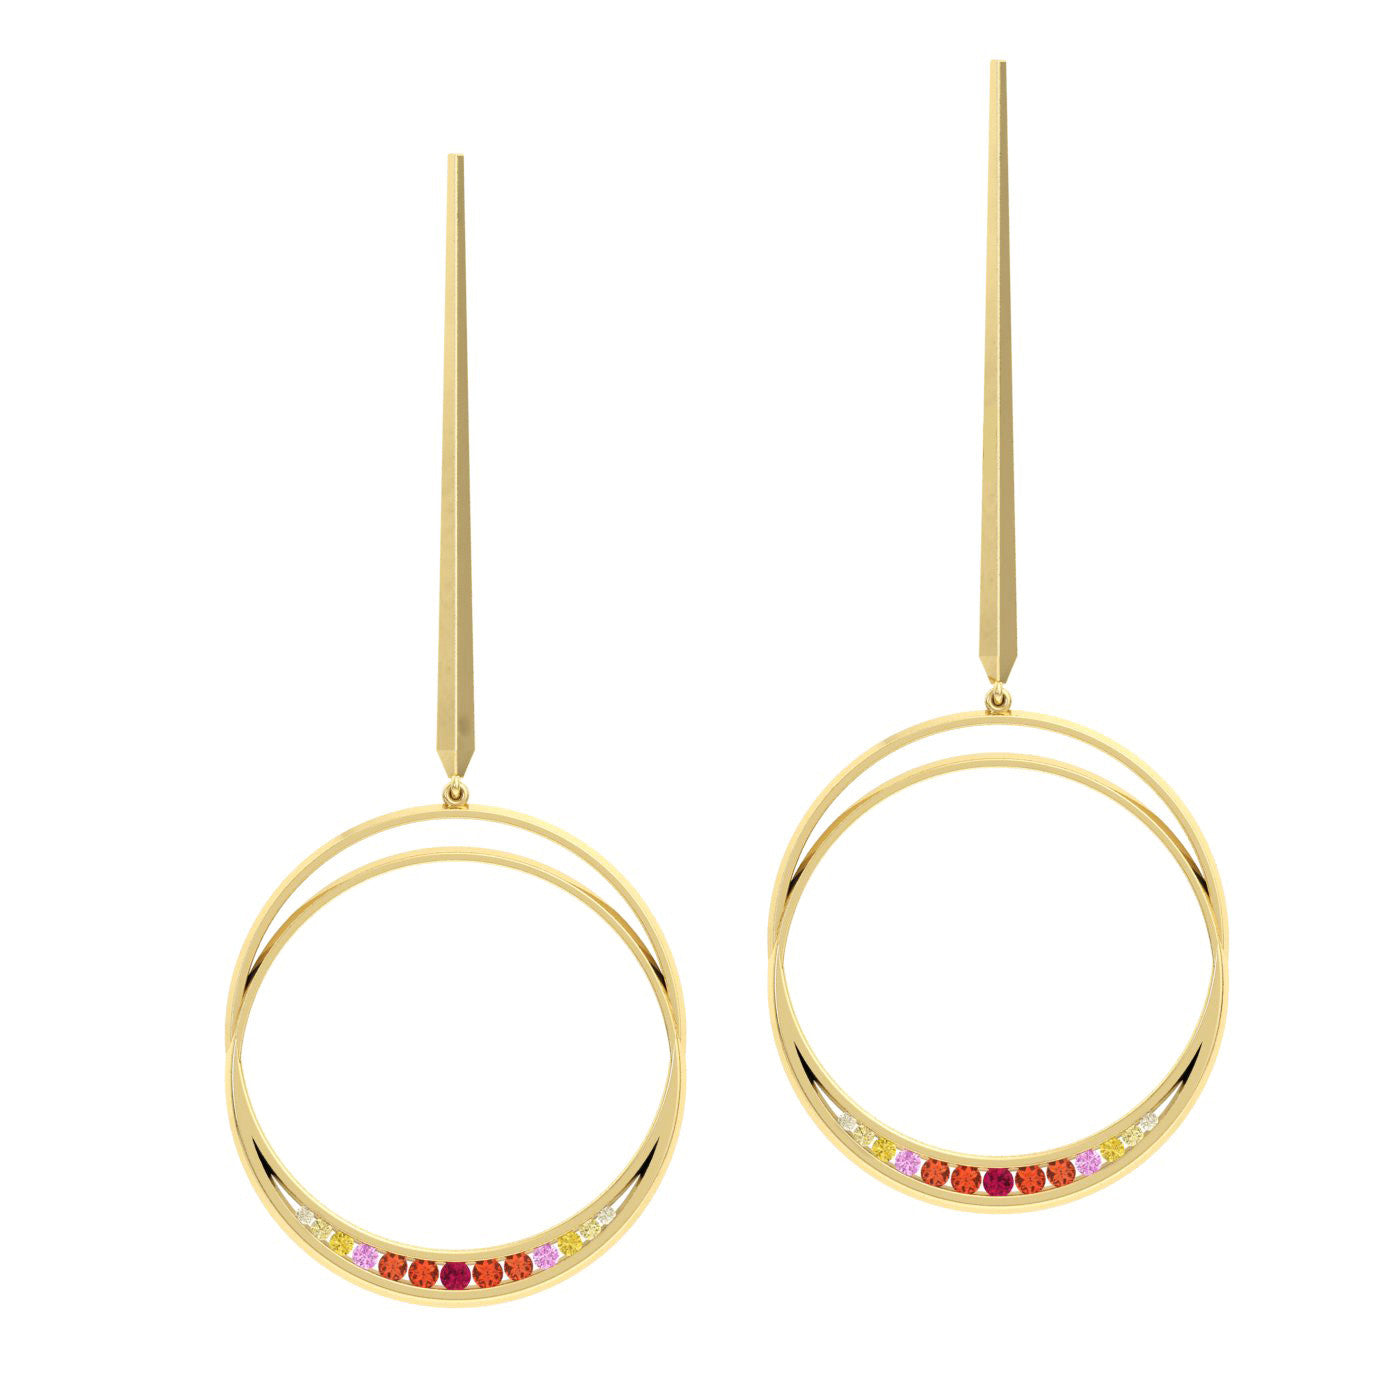 Eclipse Drop Earrings in 18kt yellow gold from Herald Diamond Couture